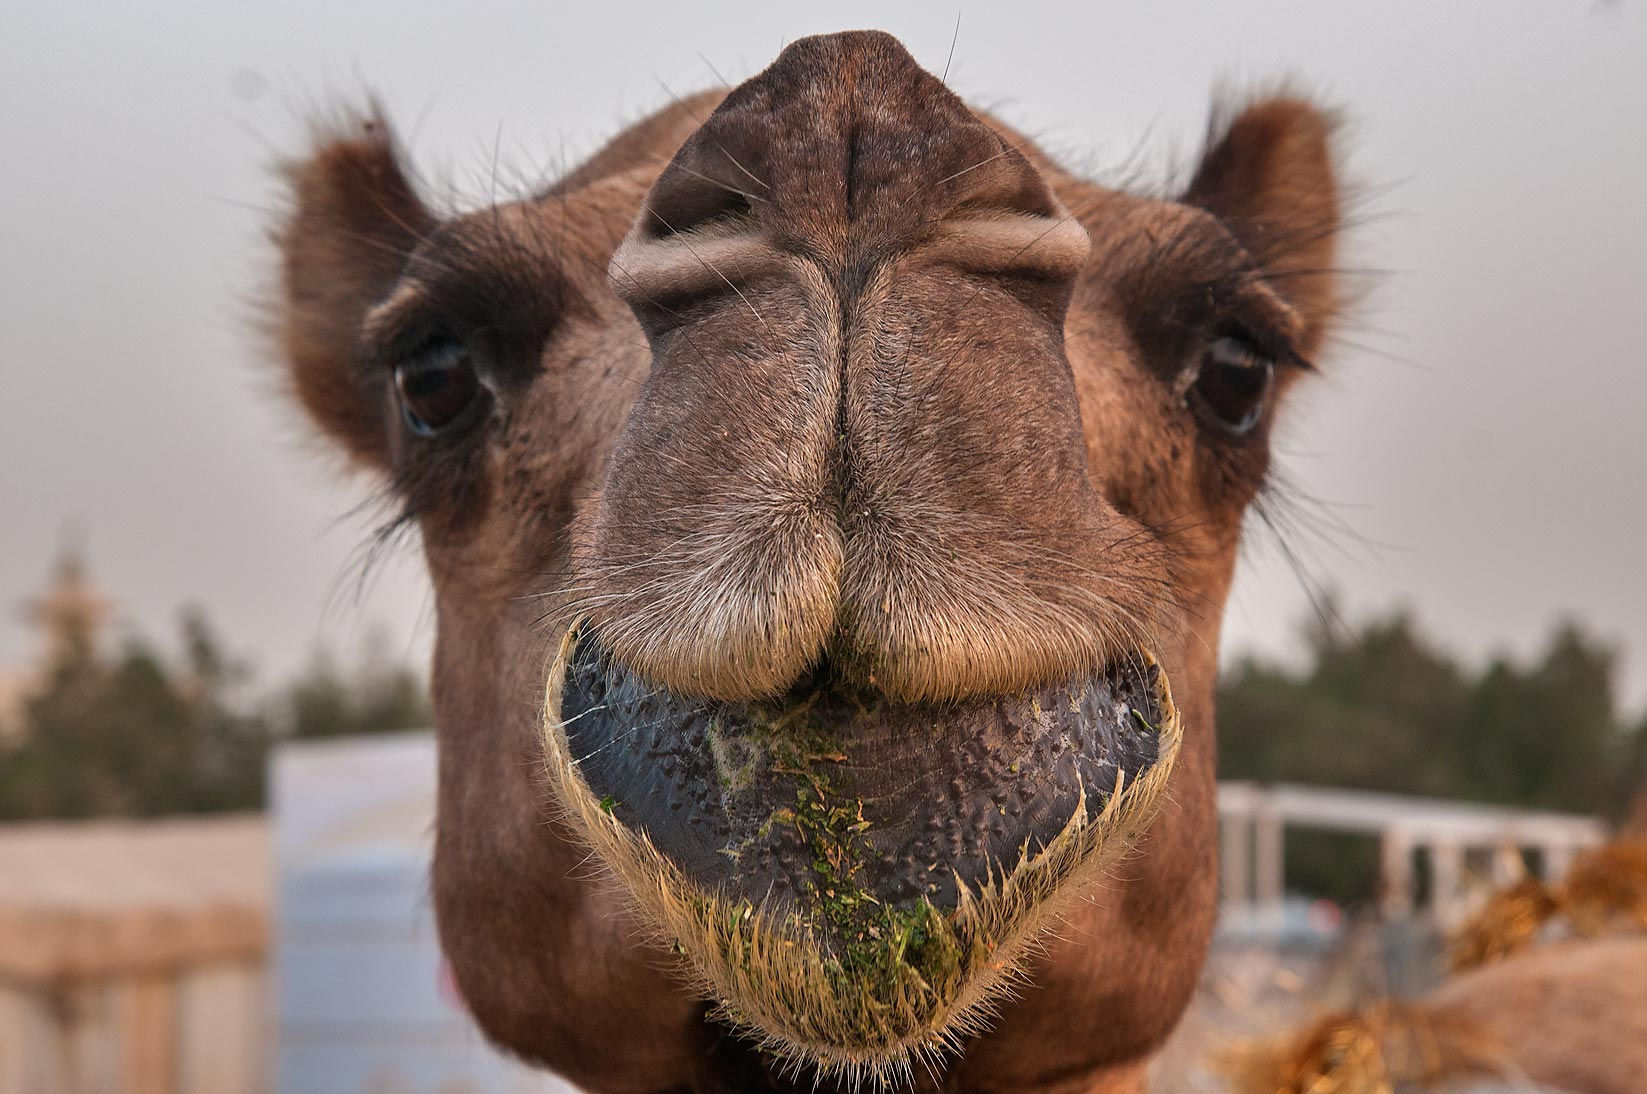 Camel with loose drooping lower lip in Camel Market, Wholesale Markets area. Doha, Qatar